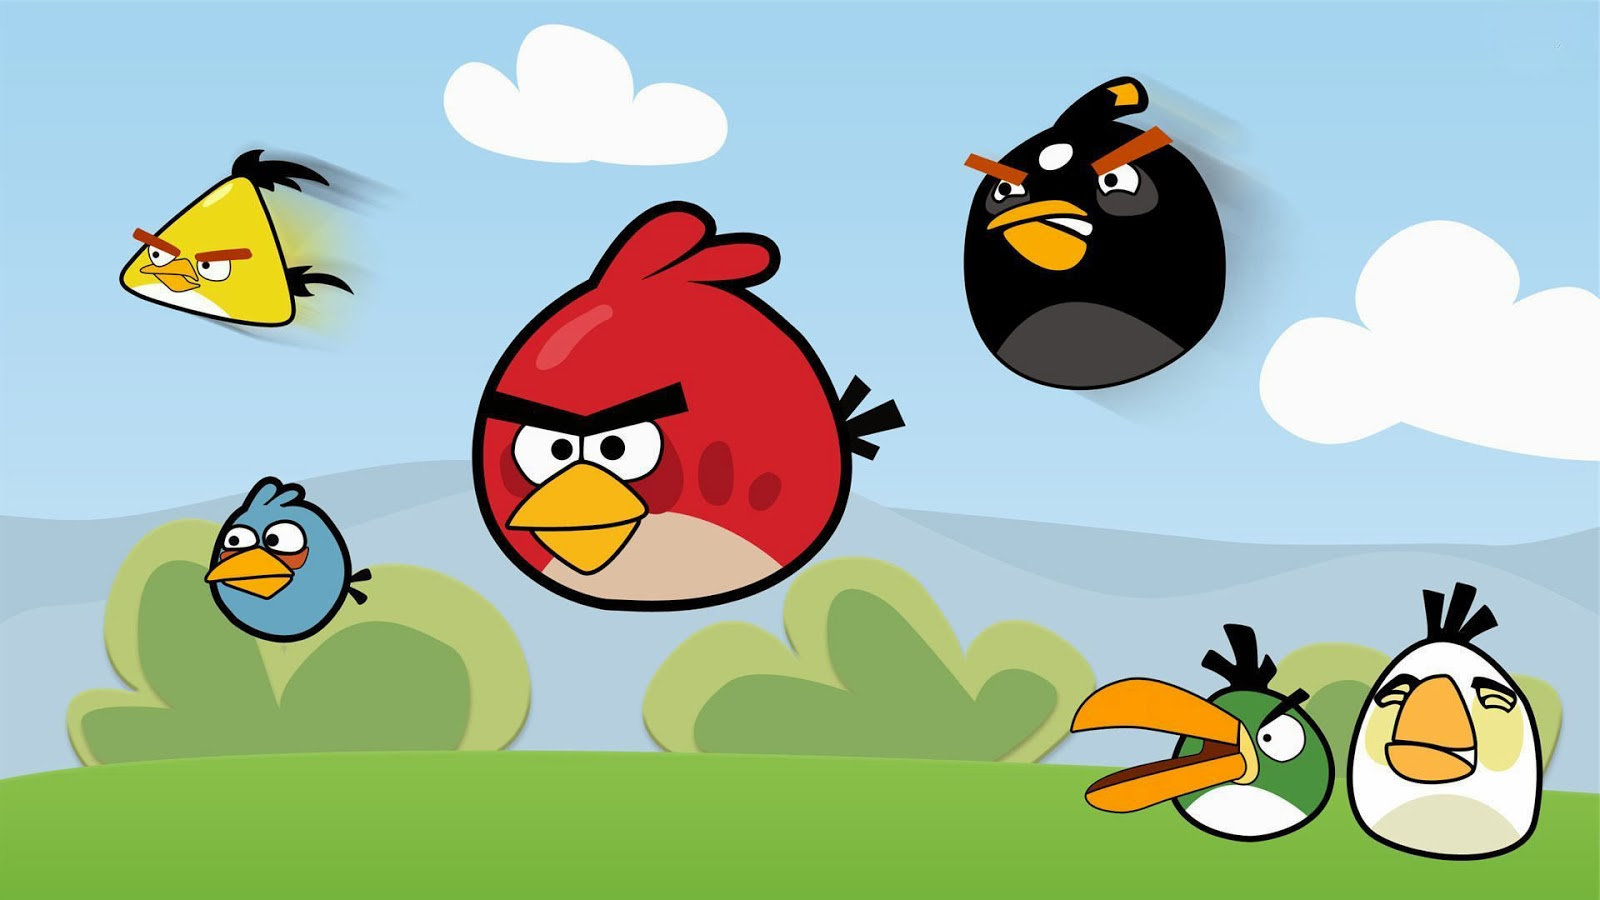 Varun Dhawan Hd Wallpaper Angry Bird Hq Pictures Free Download Unique Wallpapers